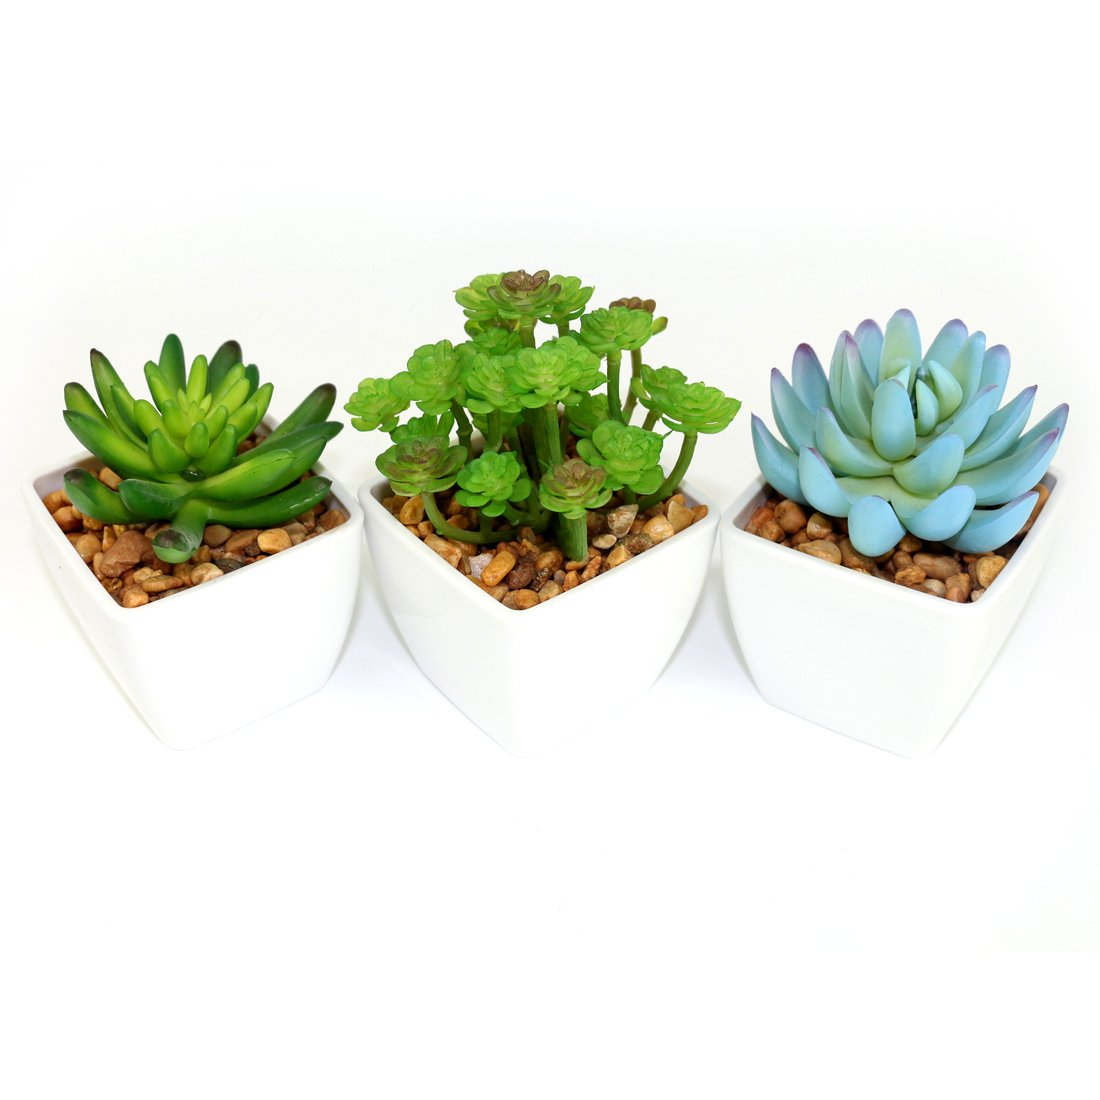 Myartte Home Decor-Set of 3 Different Artificial Succulent Plants in 3 Inch Cube Shape Plastic Basin for Home/Office decoration